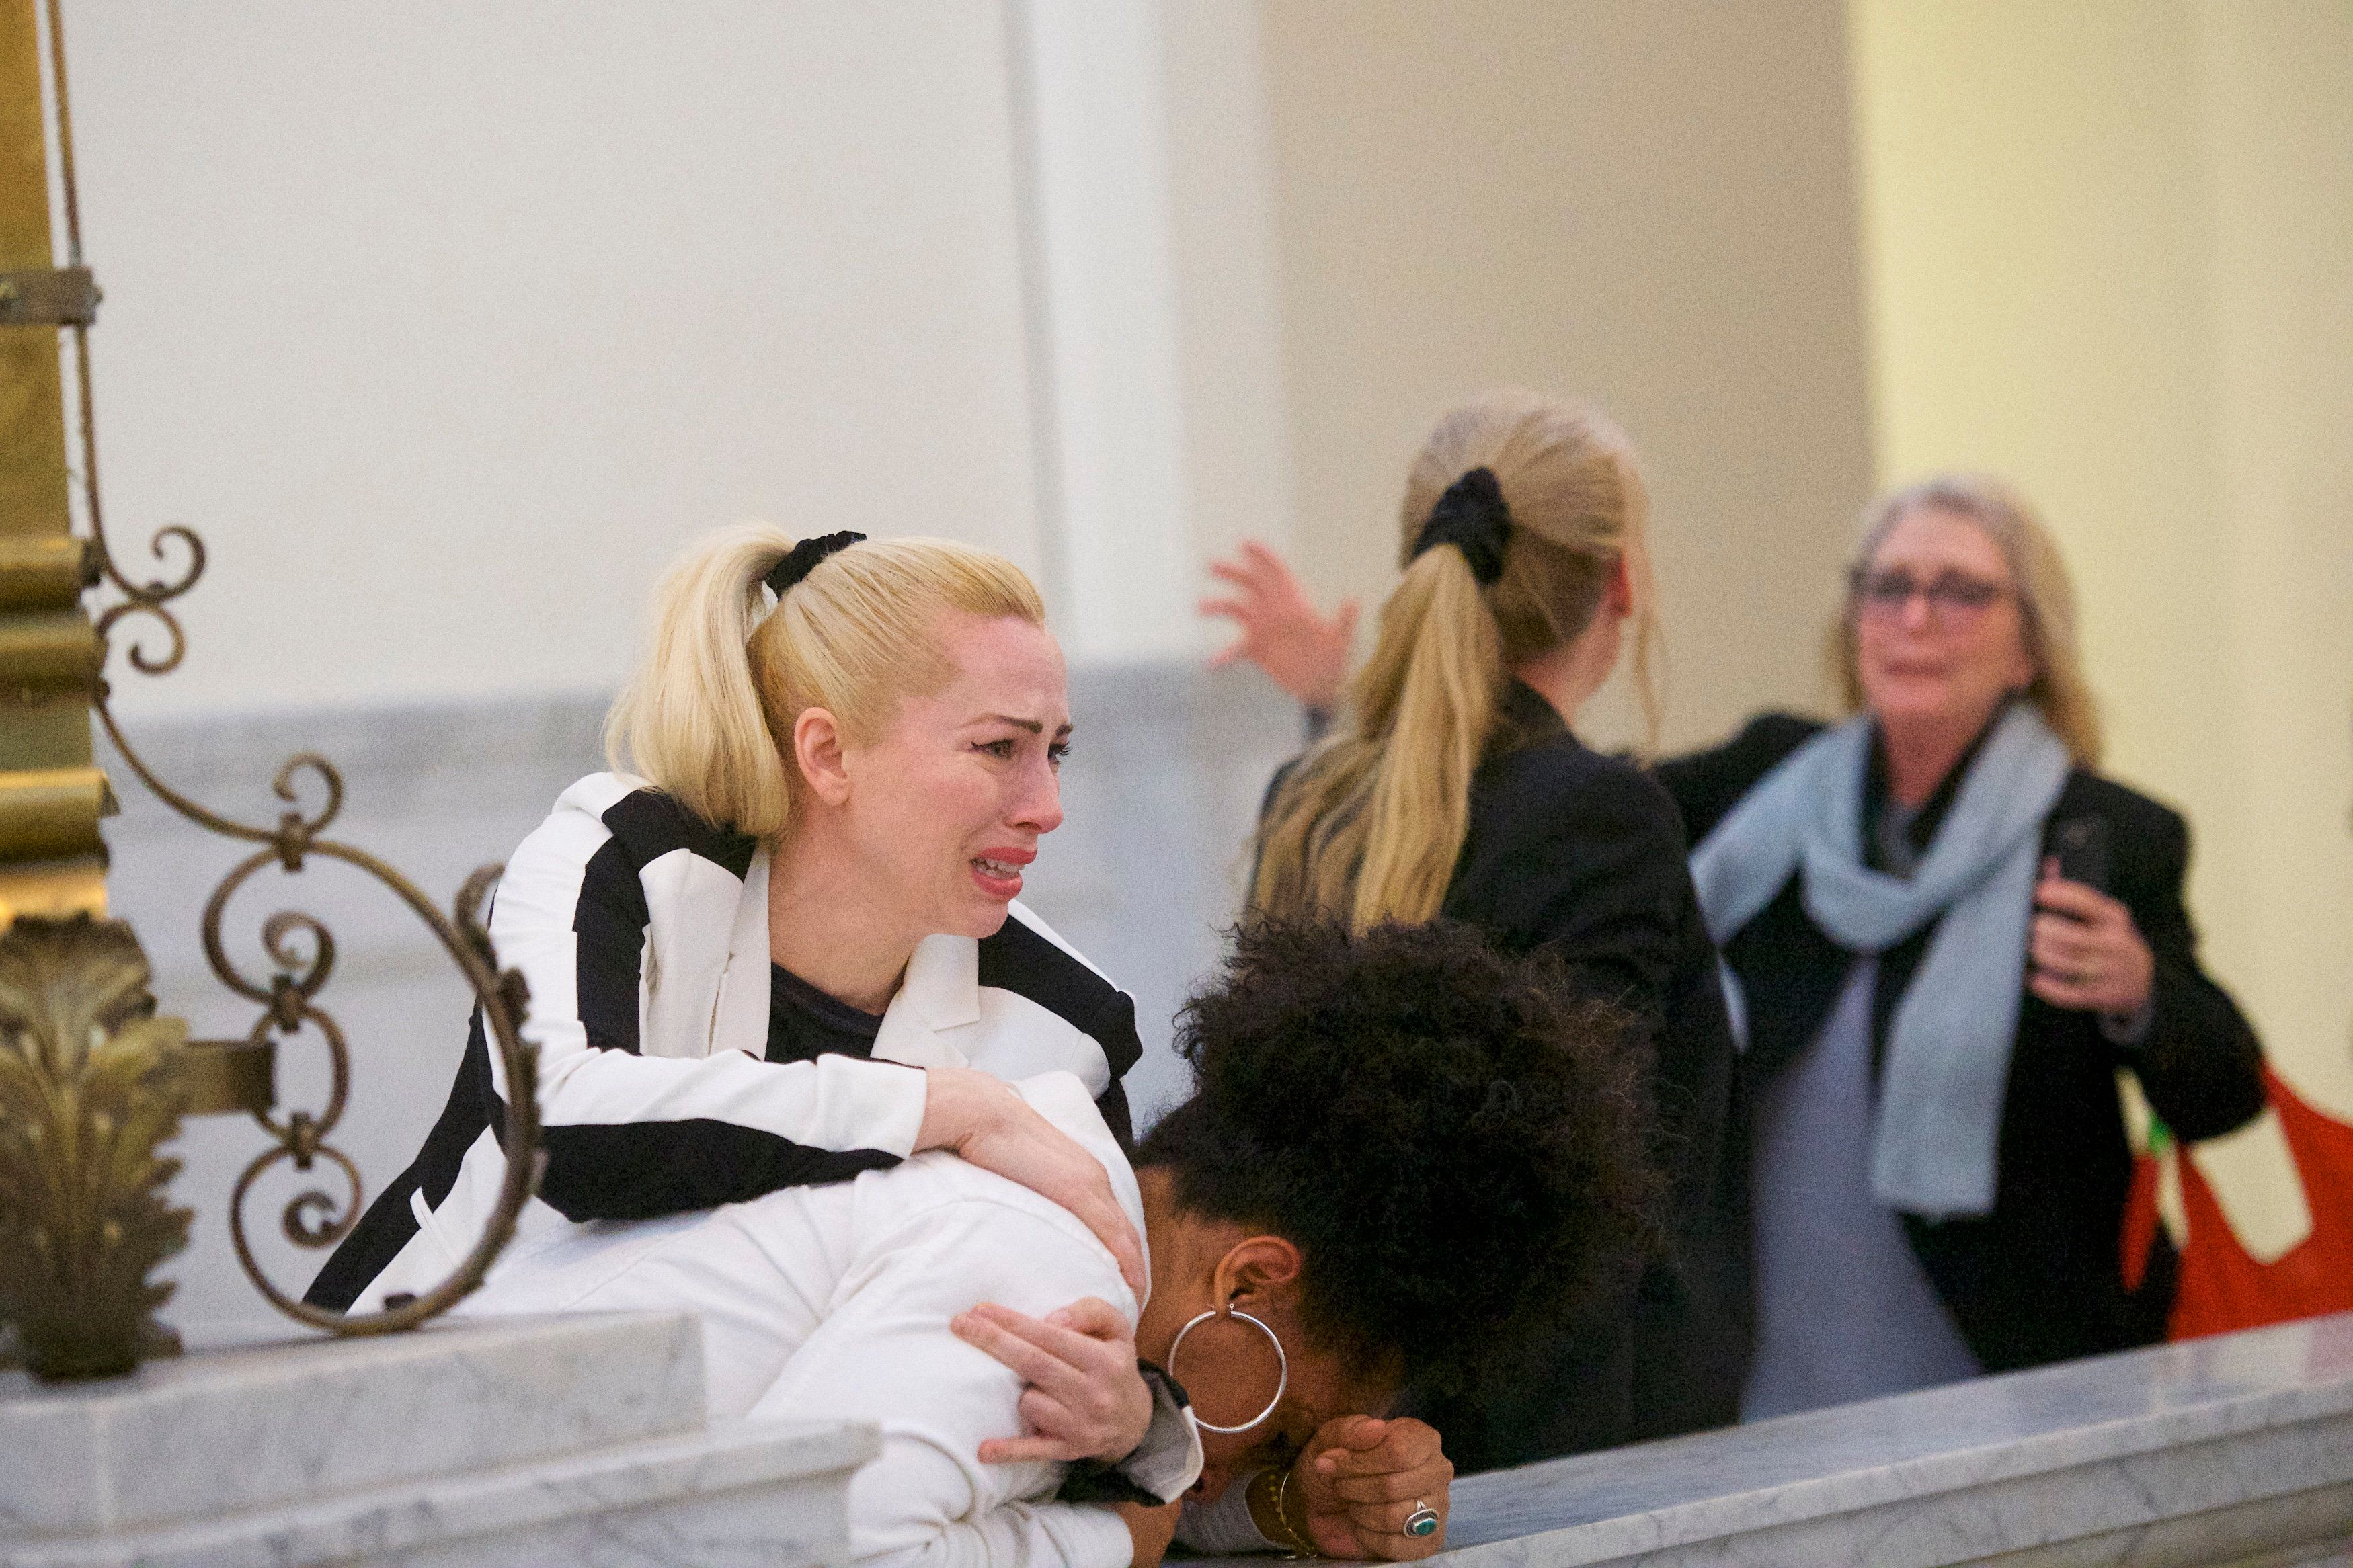 NORRISTOWN, PA - APRIL 26:  Bill Cosby accusers (L-R) Caroline Heldman, Lili Bernard and Victoria Valentino (far right) react after the guilty on all counts verdict was delivered in the sexual assault retrial at the Montgomery County Courthouse on April 26, 2018 in Norristown, Pennsylvania.  Cosby was found guilty on all accounts after a former Temple University employee alleges that the entertainer drugged and molested her in 2004 at his home in suburban Philadelphia.  More than 40 women have accused the 80 year old entertainer of sexual assault.  (Photo by Mark Makela/Getty Images)